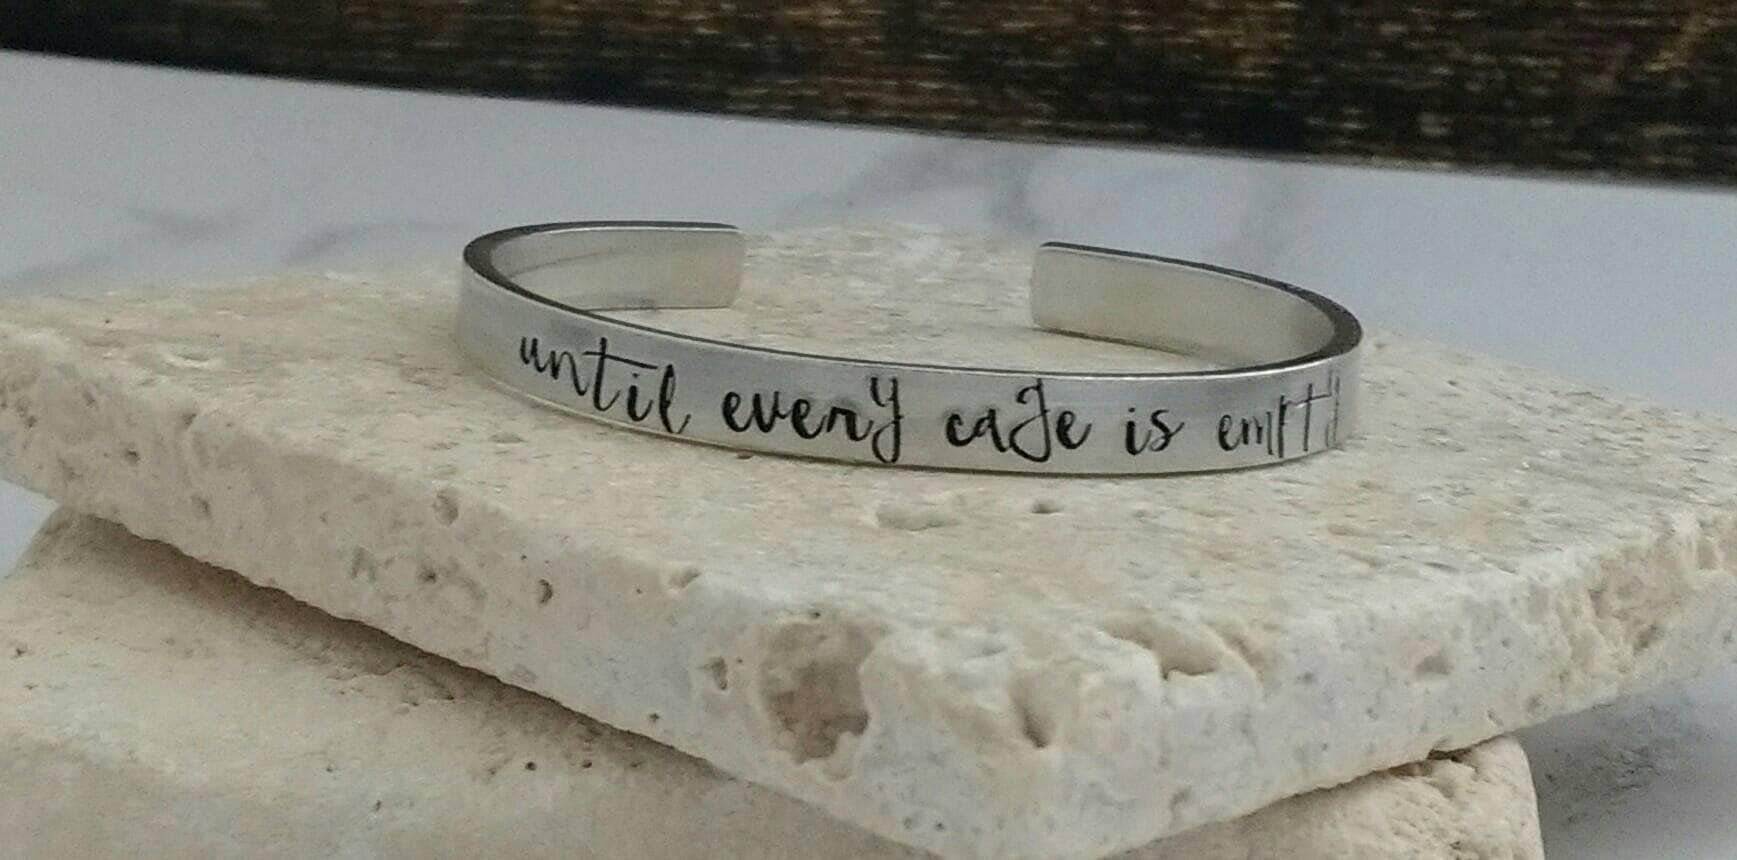 Until every cage is empty cuff bracelet fun font vegan bracelet - adjustable - handstamped - unisex